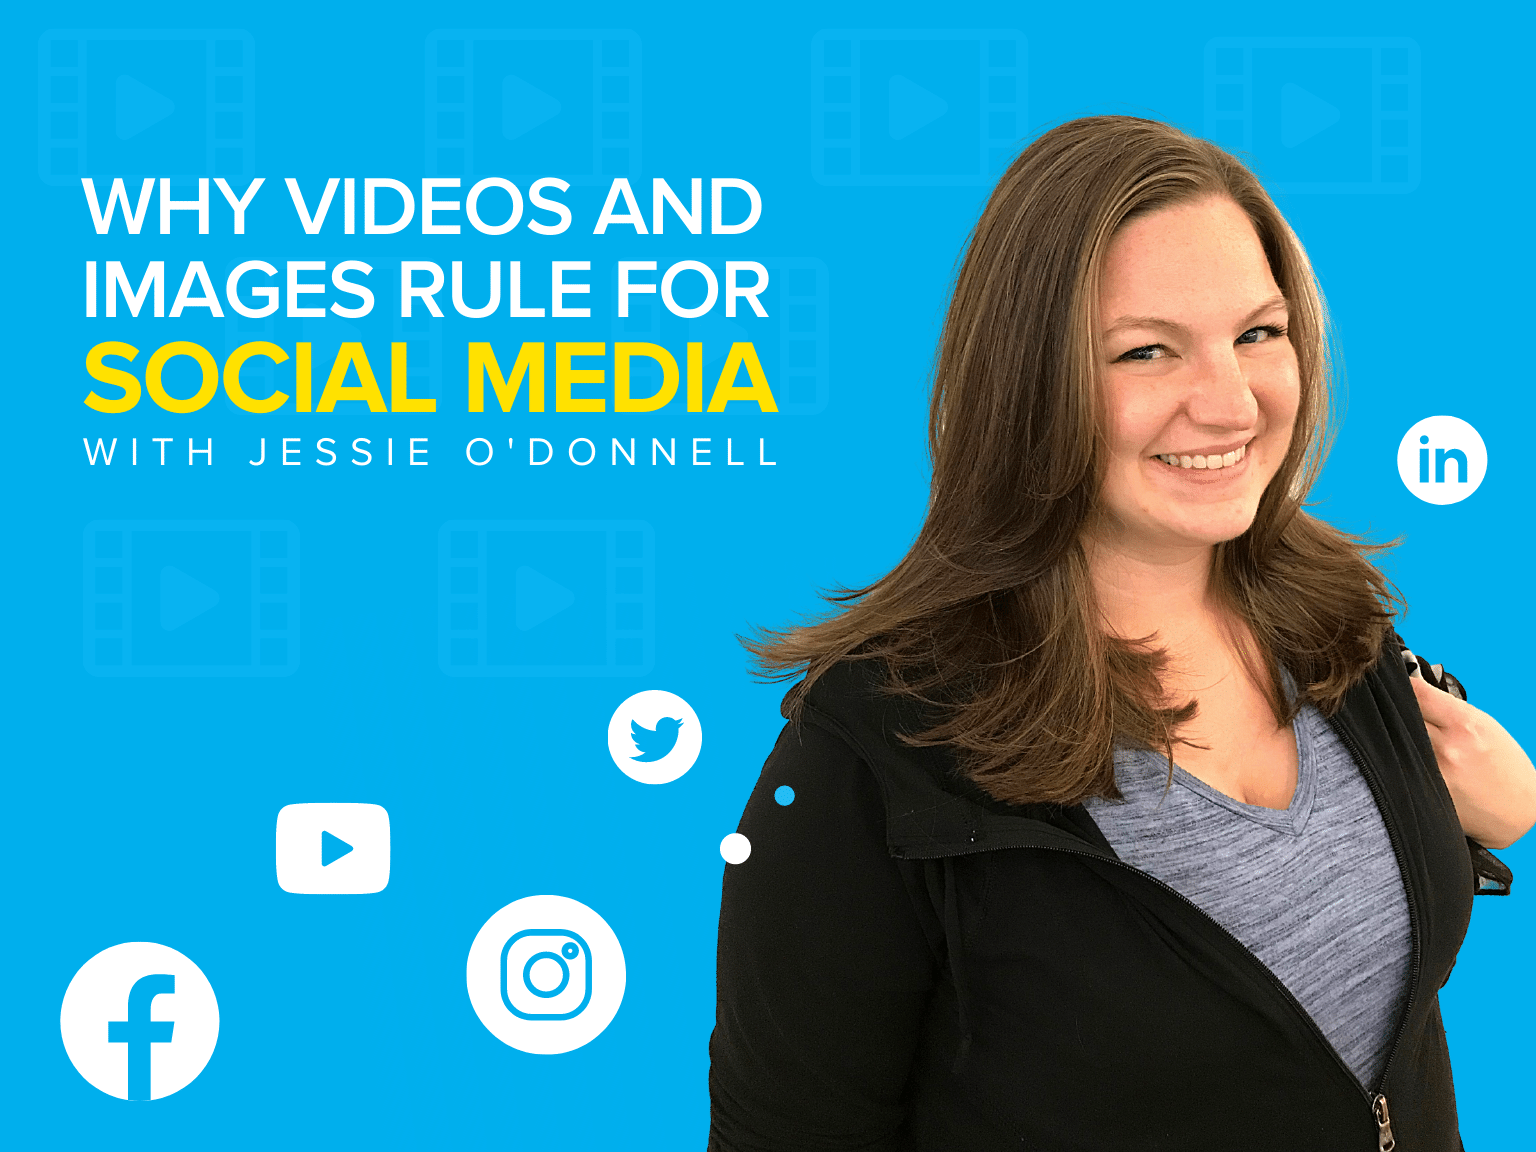 Why Videos and Images Rule for Social Media with Jessie O'Donnell